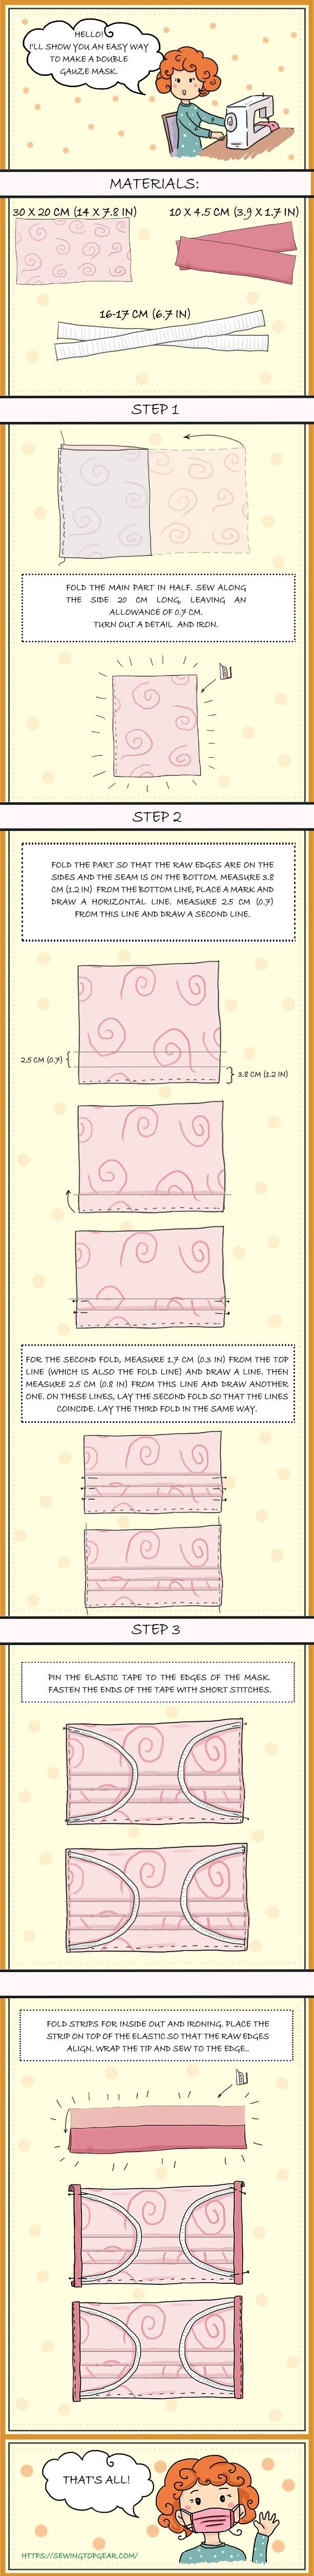 How to Sew a Face Mask at Home #infographic